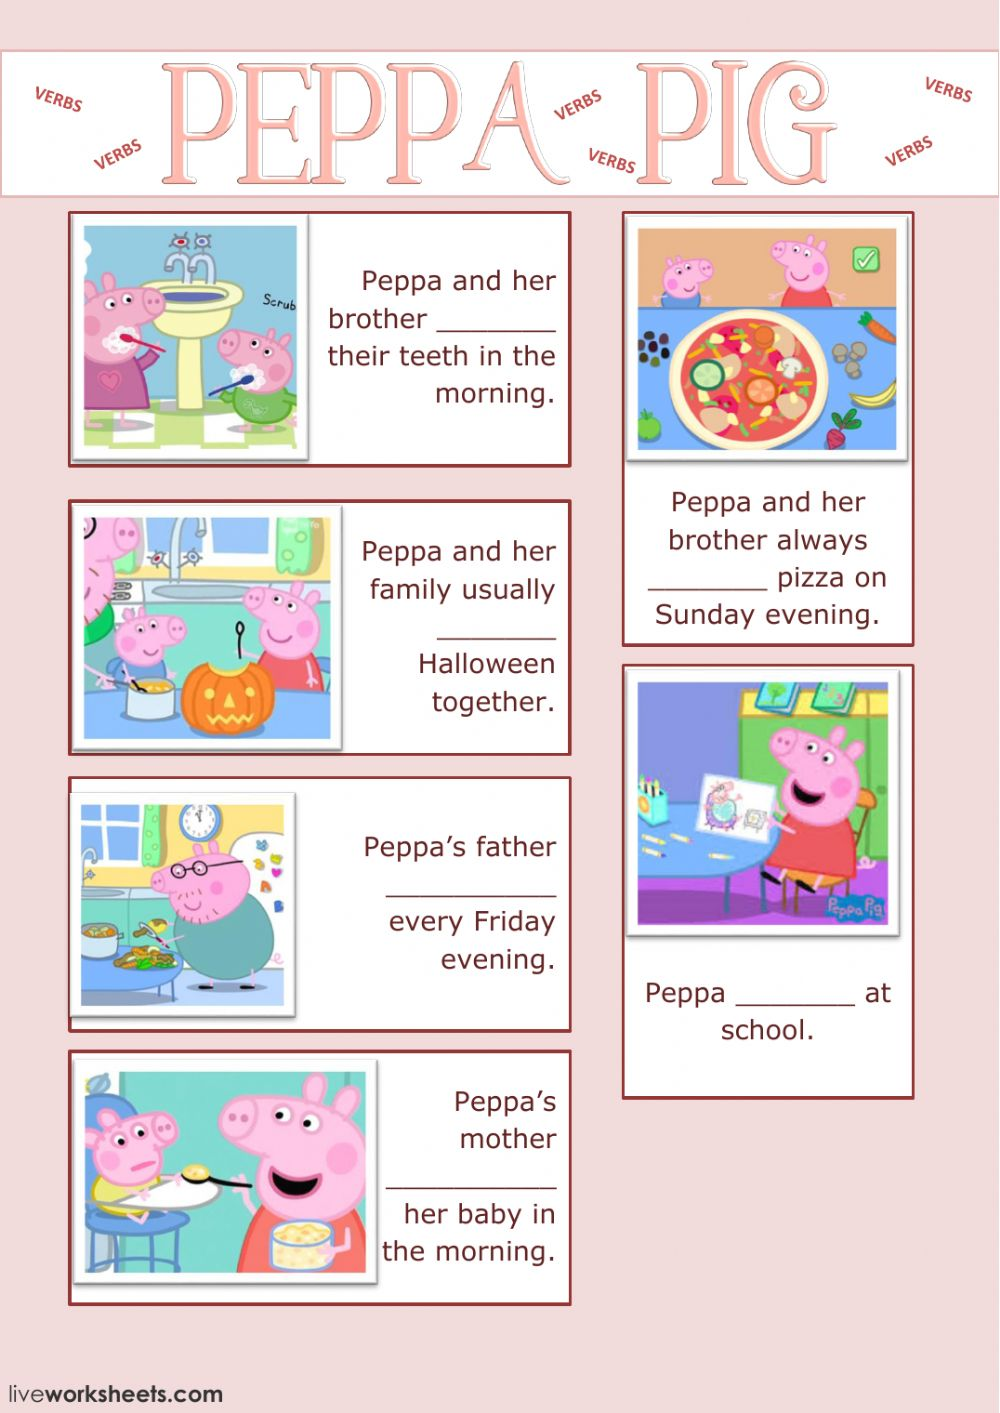 Peppa Pig Worksheets - The Best and Most Comprehensive ...